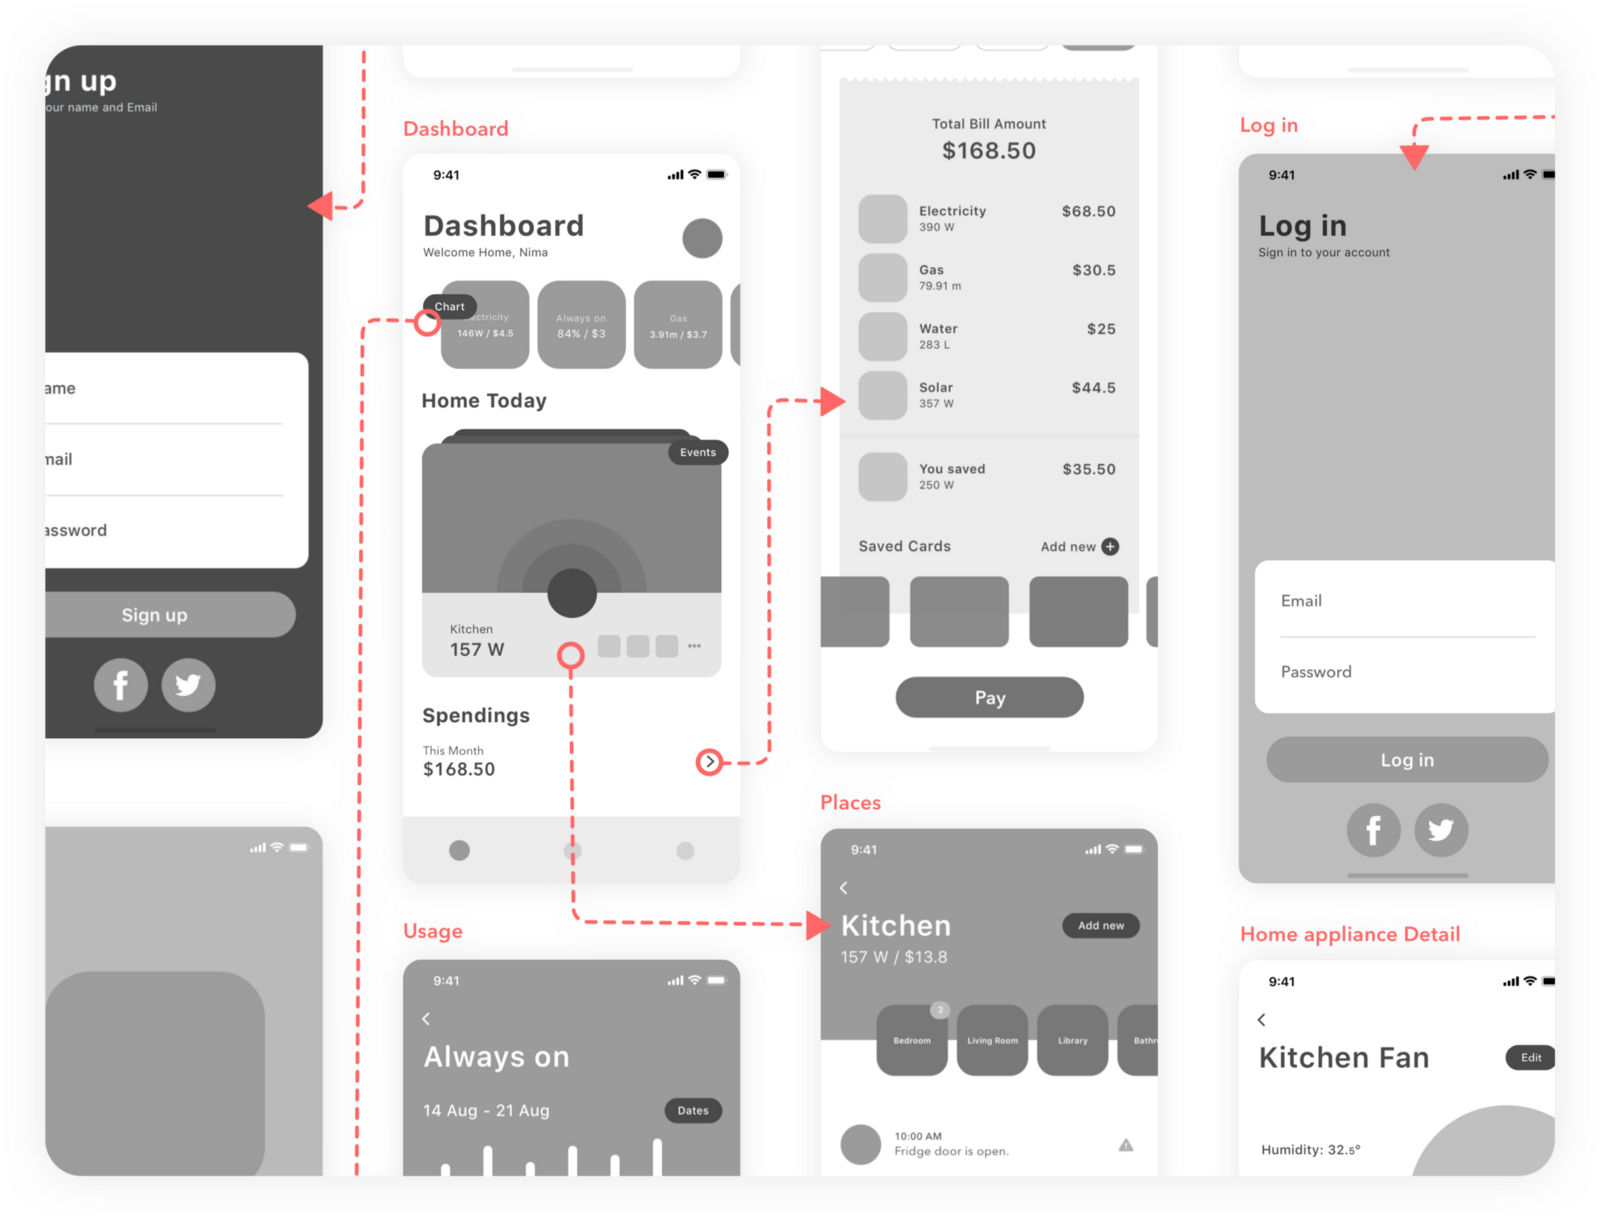 Sweet Home Smart Energy Monitor A Ux Case Study Lyto Game On 500k I Took Step Forward And Prepared Wireframes To Focus Usability Ensure That The App Is Built According Goals Also Had Chance Ask For